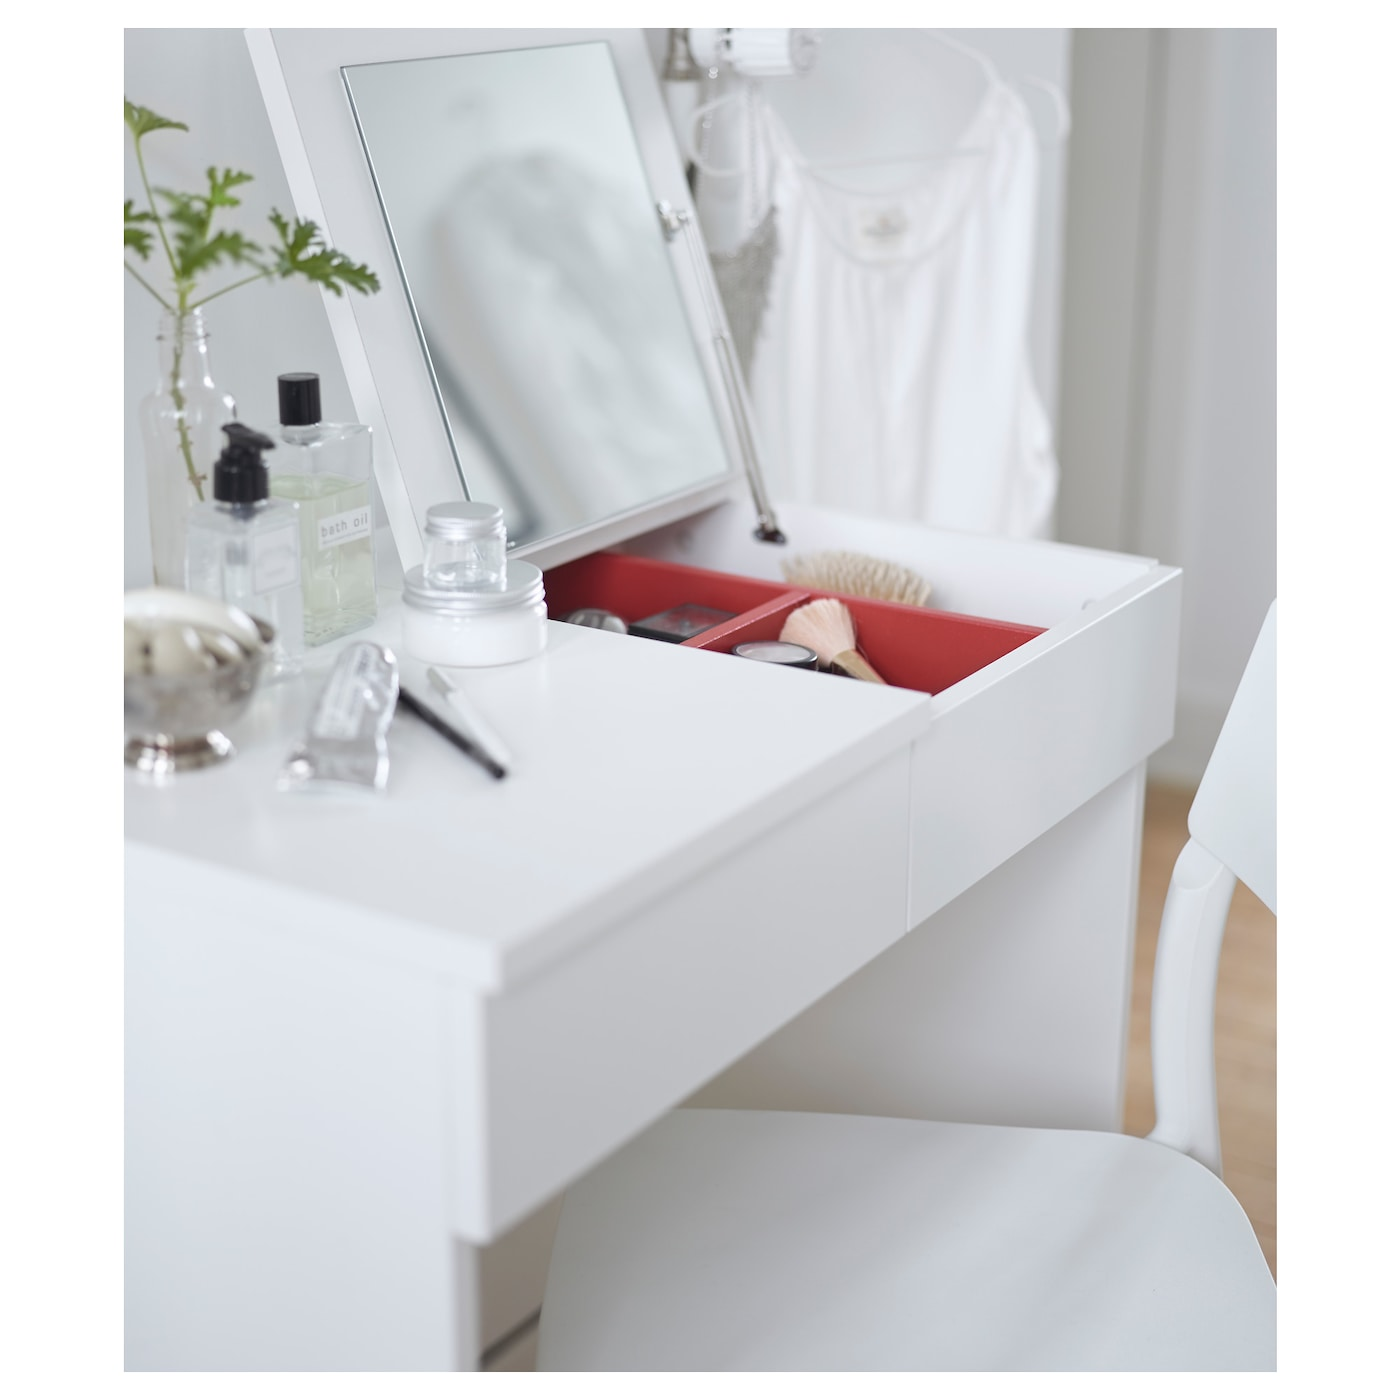 Brimnes dressing table white 70x42 cm ikea for Beauty parlour dressing table images